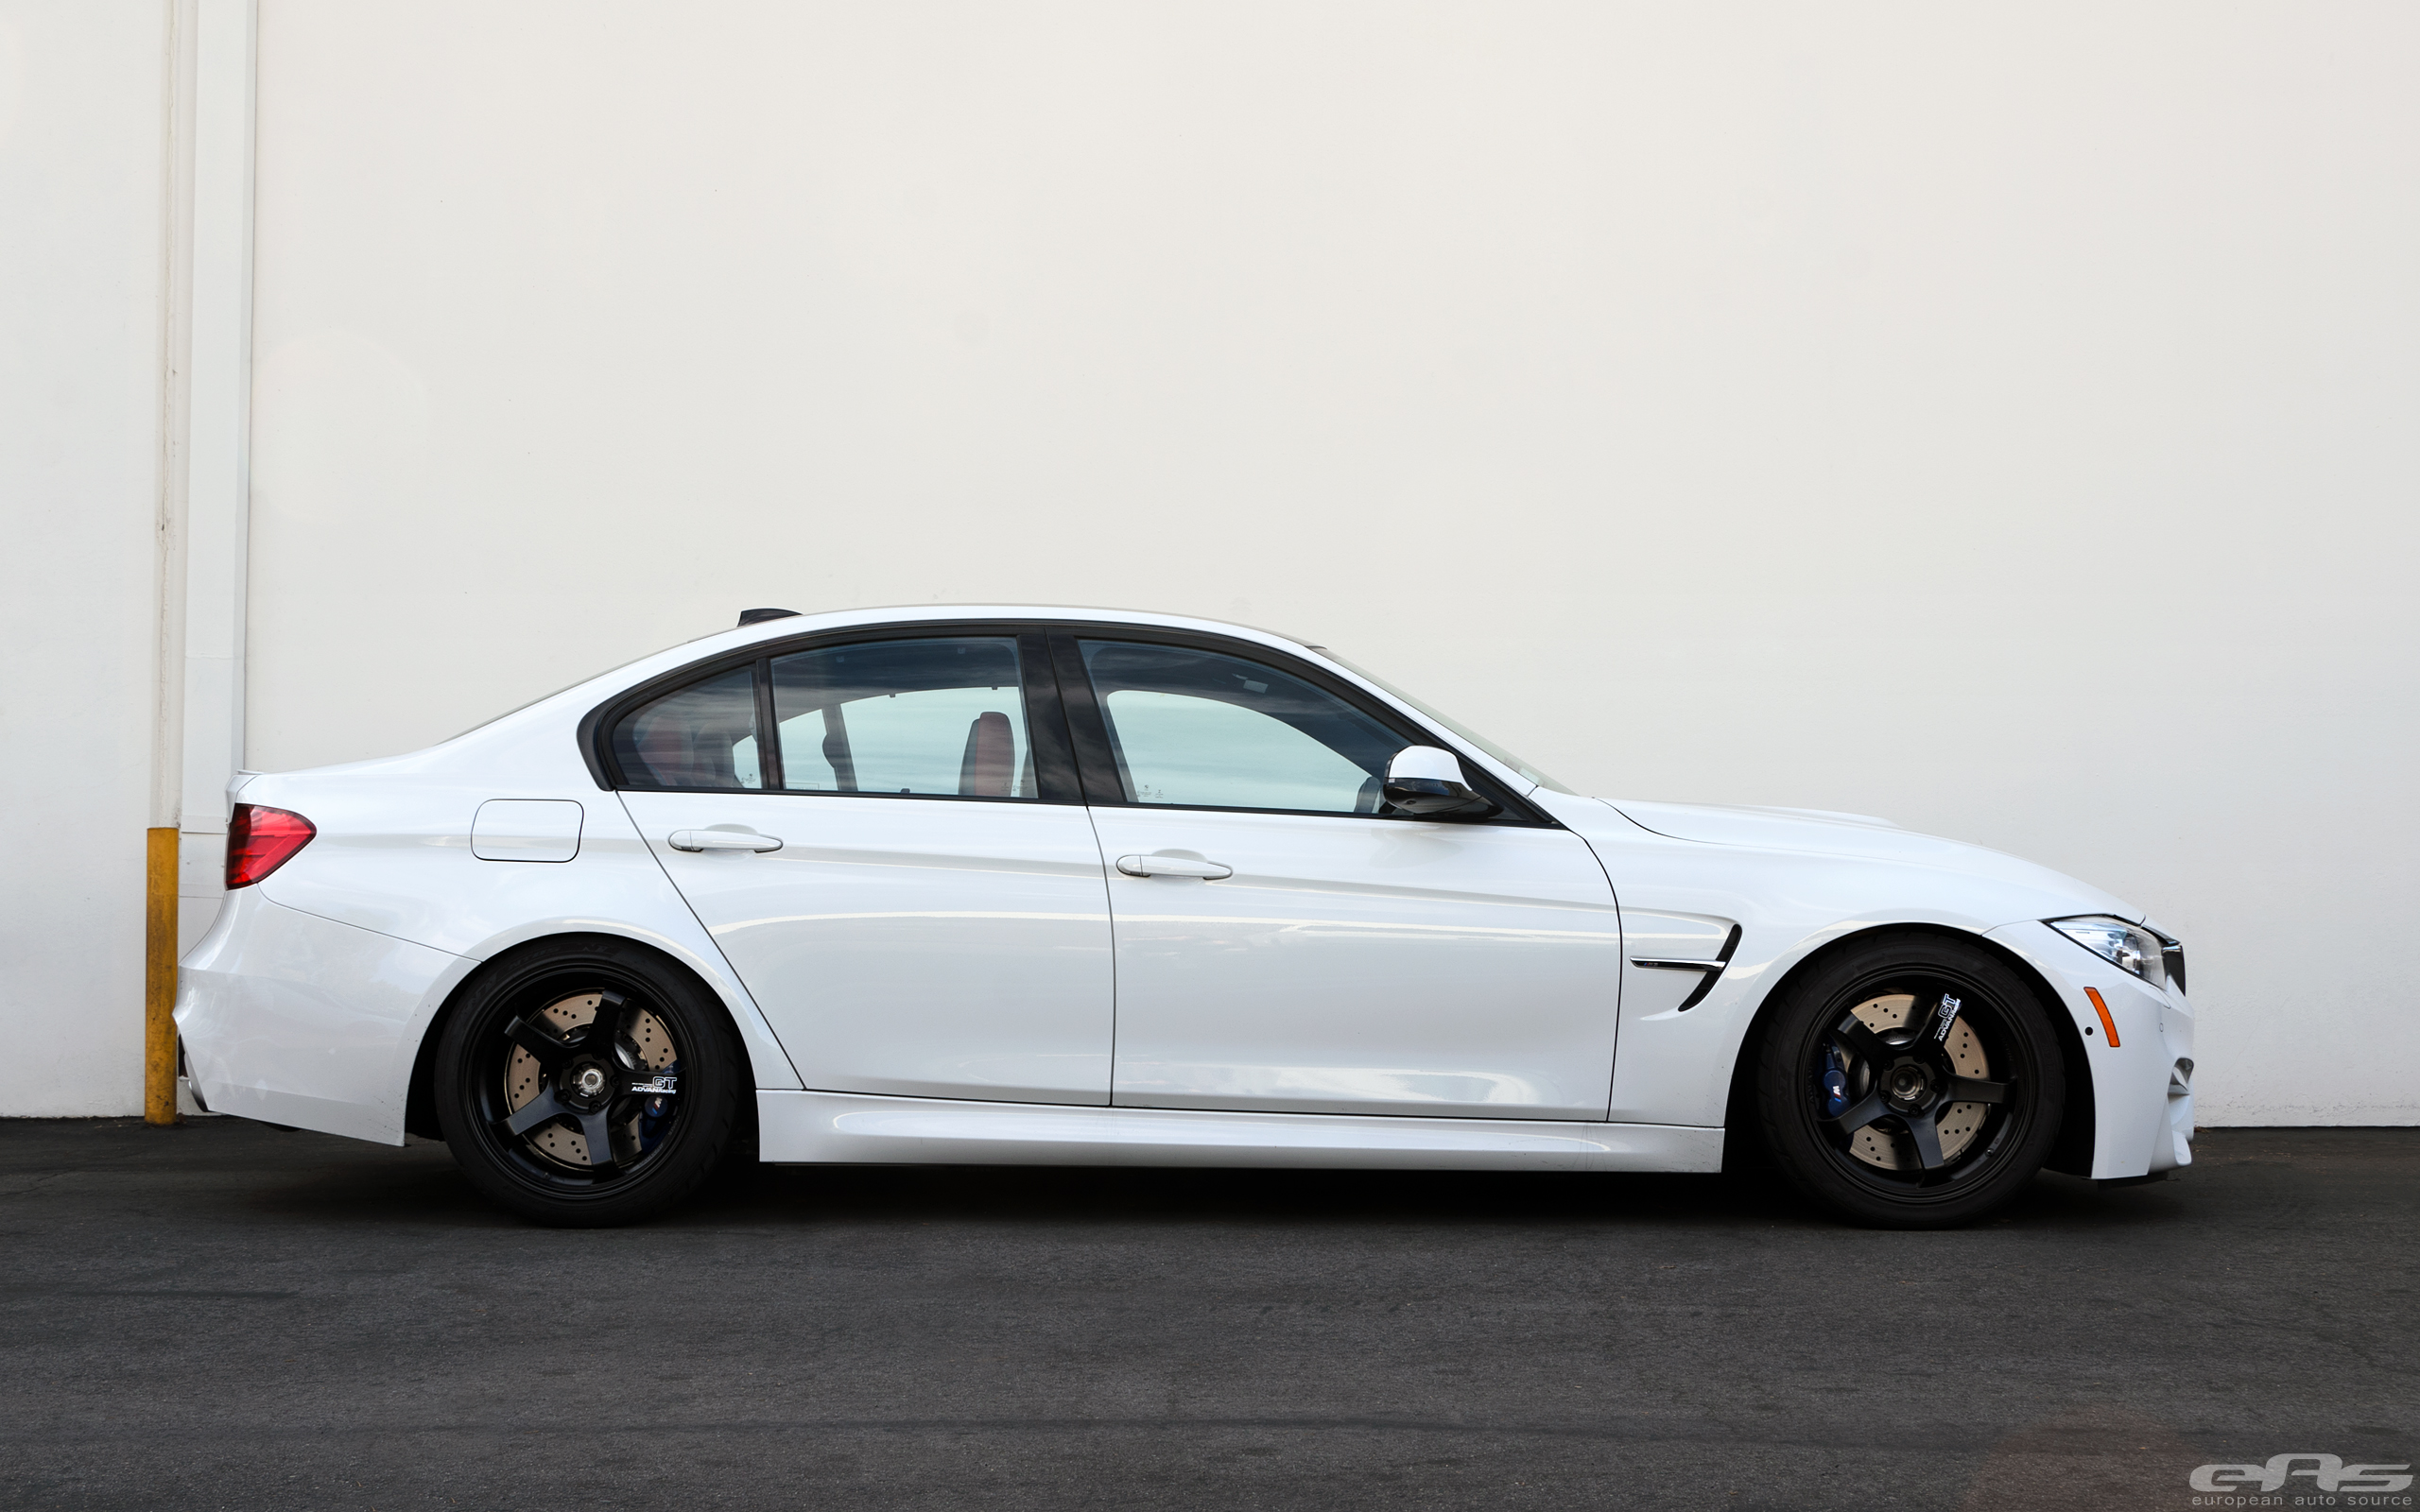 New 18 Quot Advan Gt Wheels Forged Socal